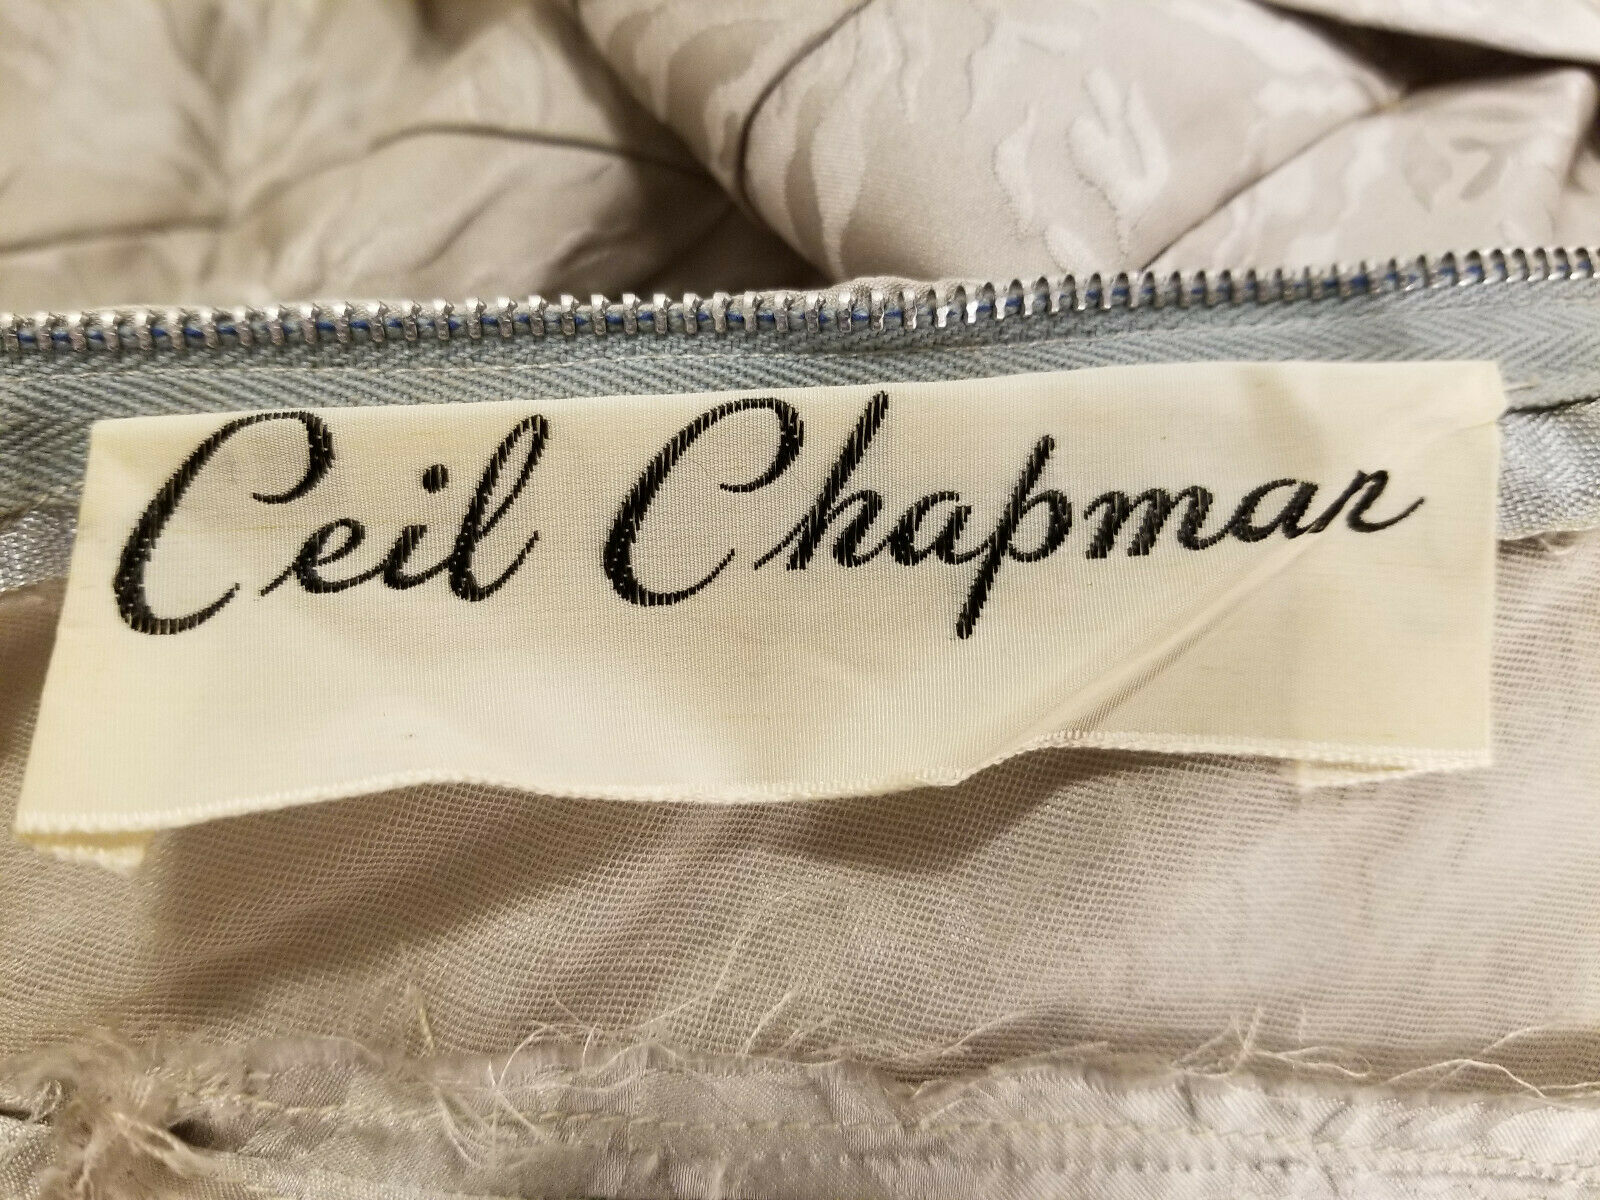 NEW OLD STOCK NOS CEIL CHAPMAN VINTAGE 1950S COCK… - image 10